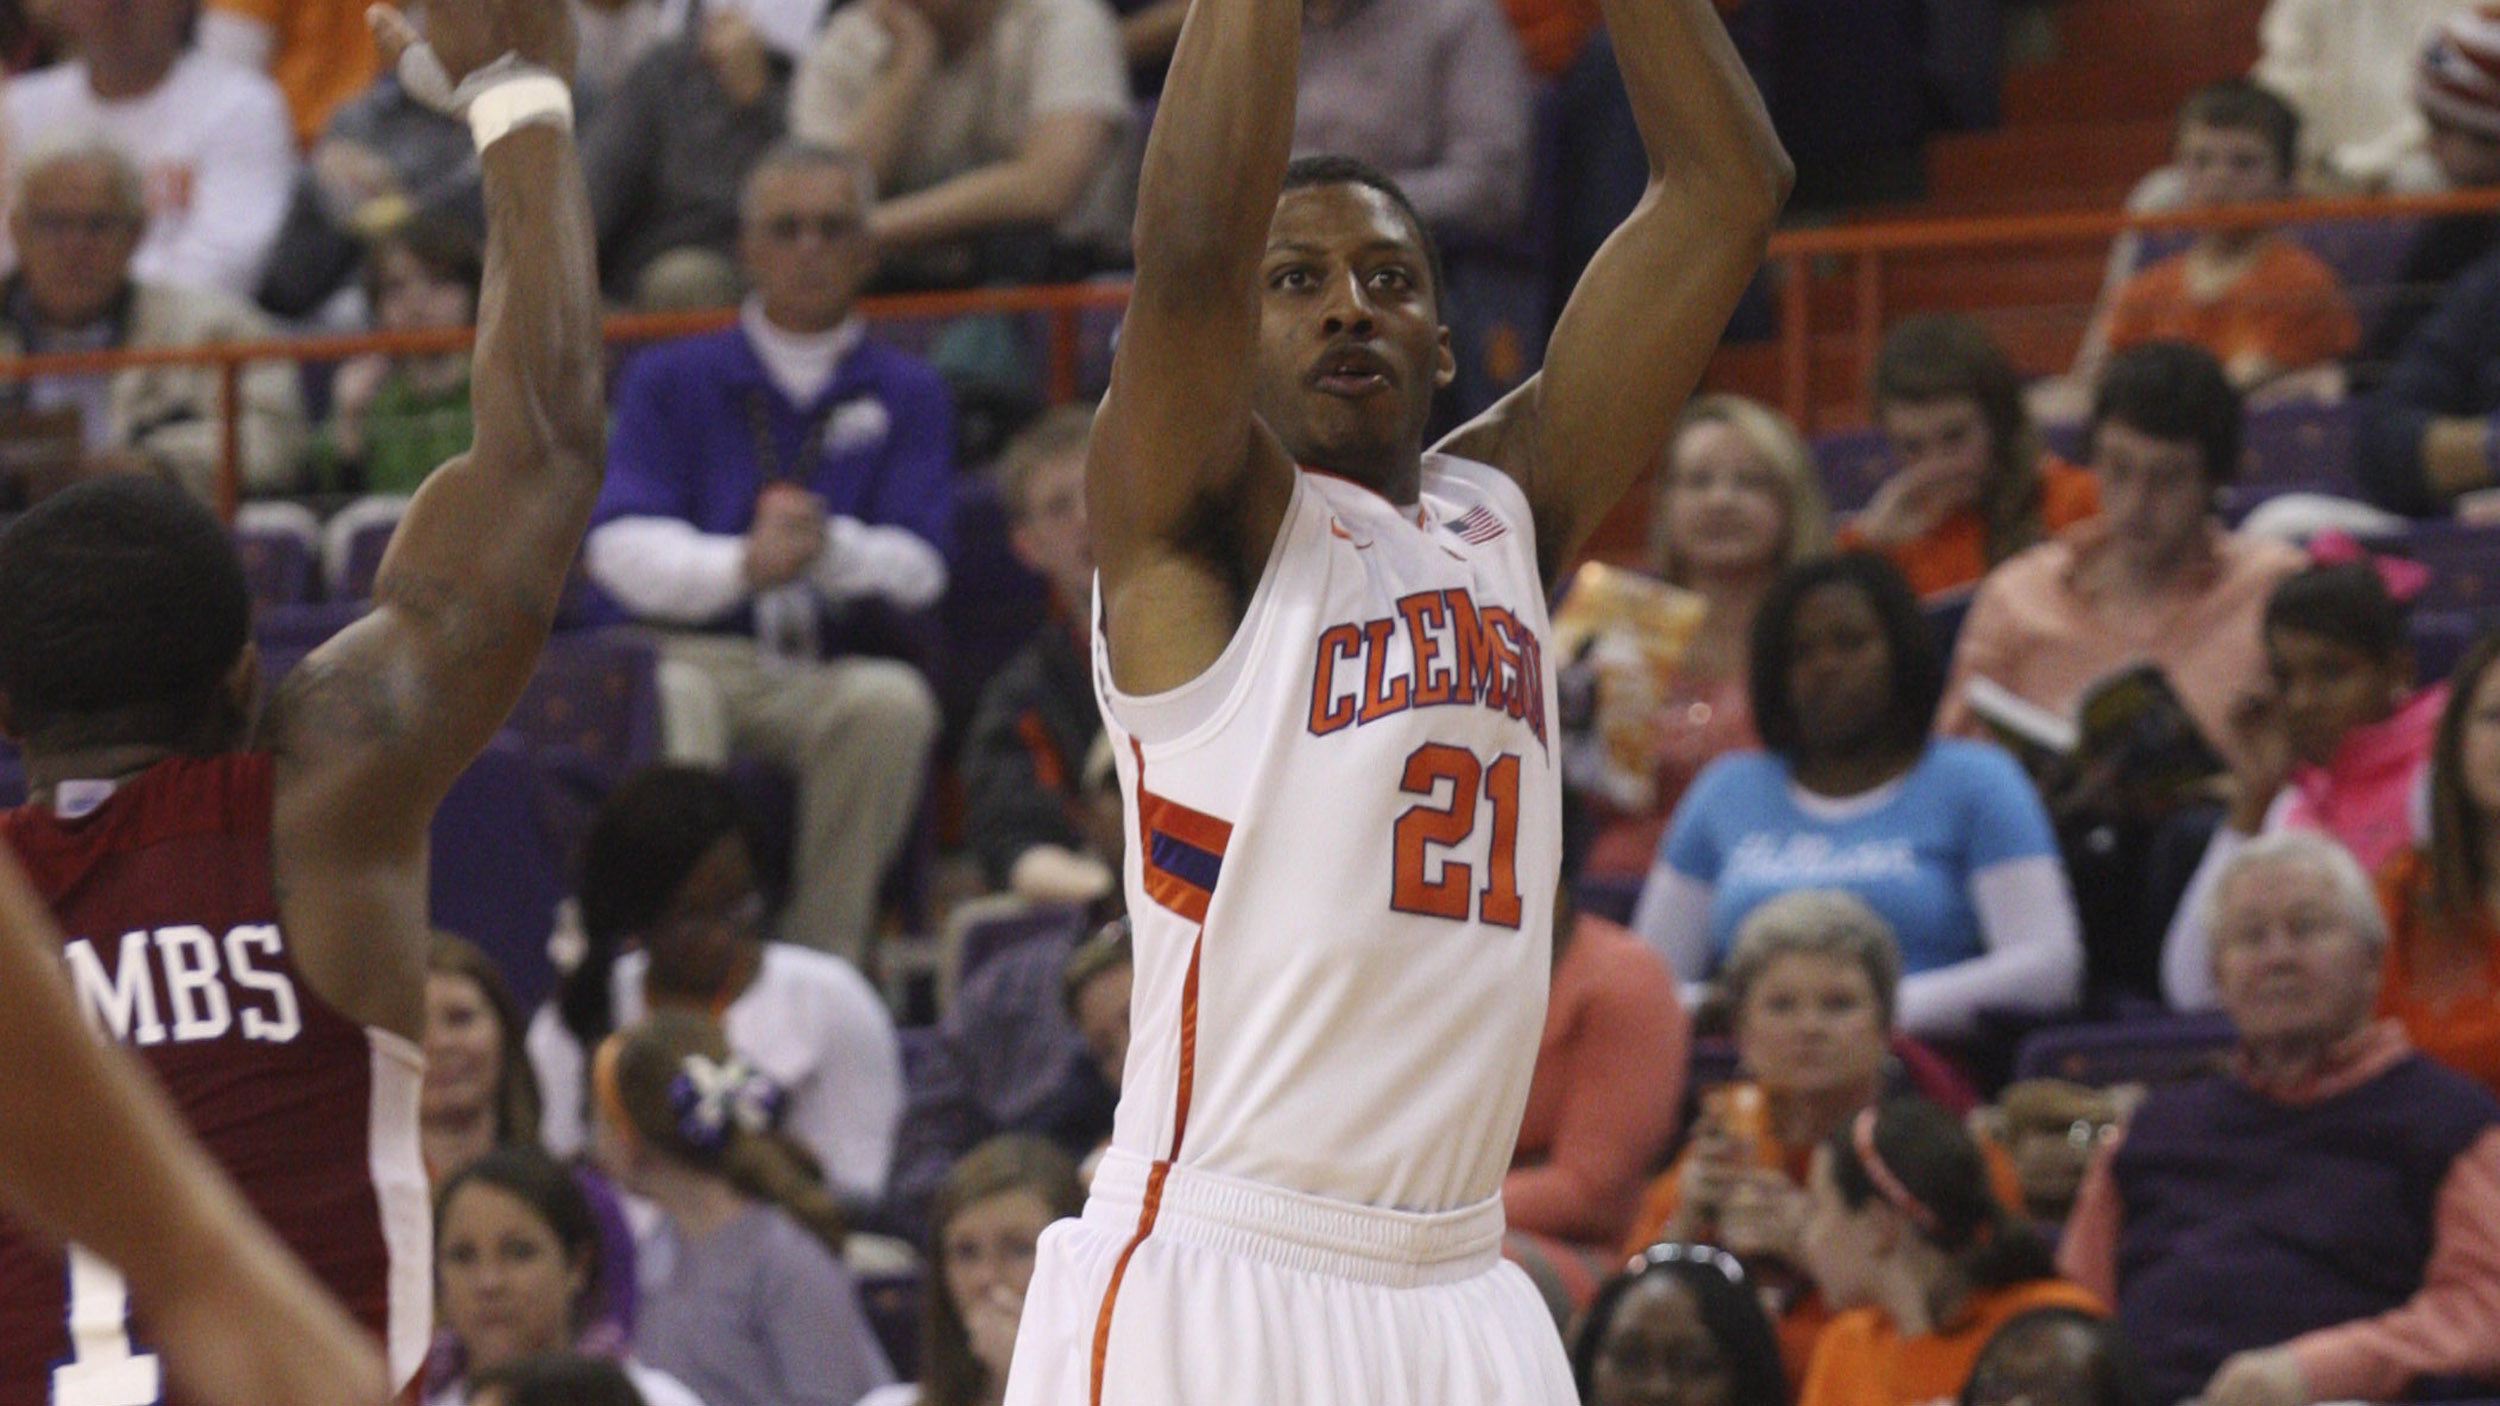 Clemson Uses 21-2 Run to Bury SC State in 77-41 Victory Sunday